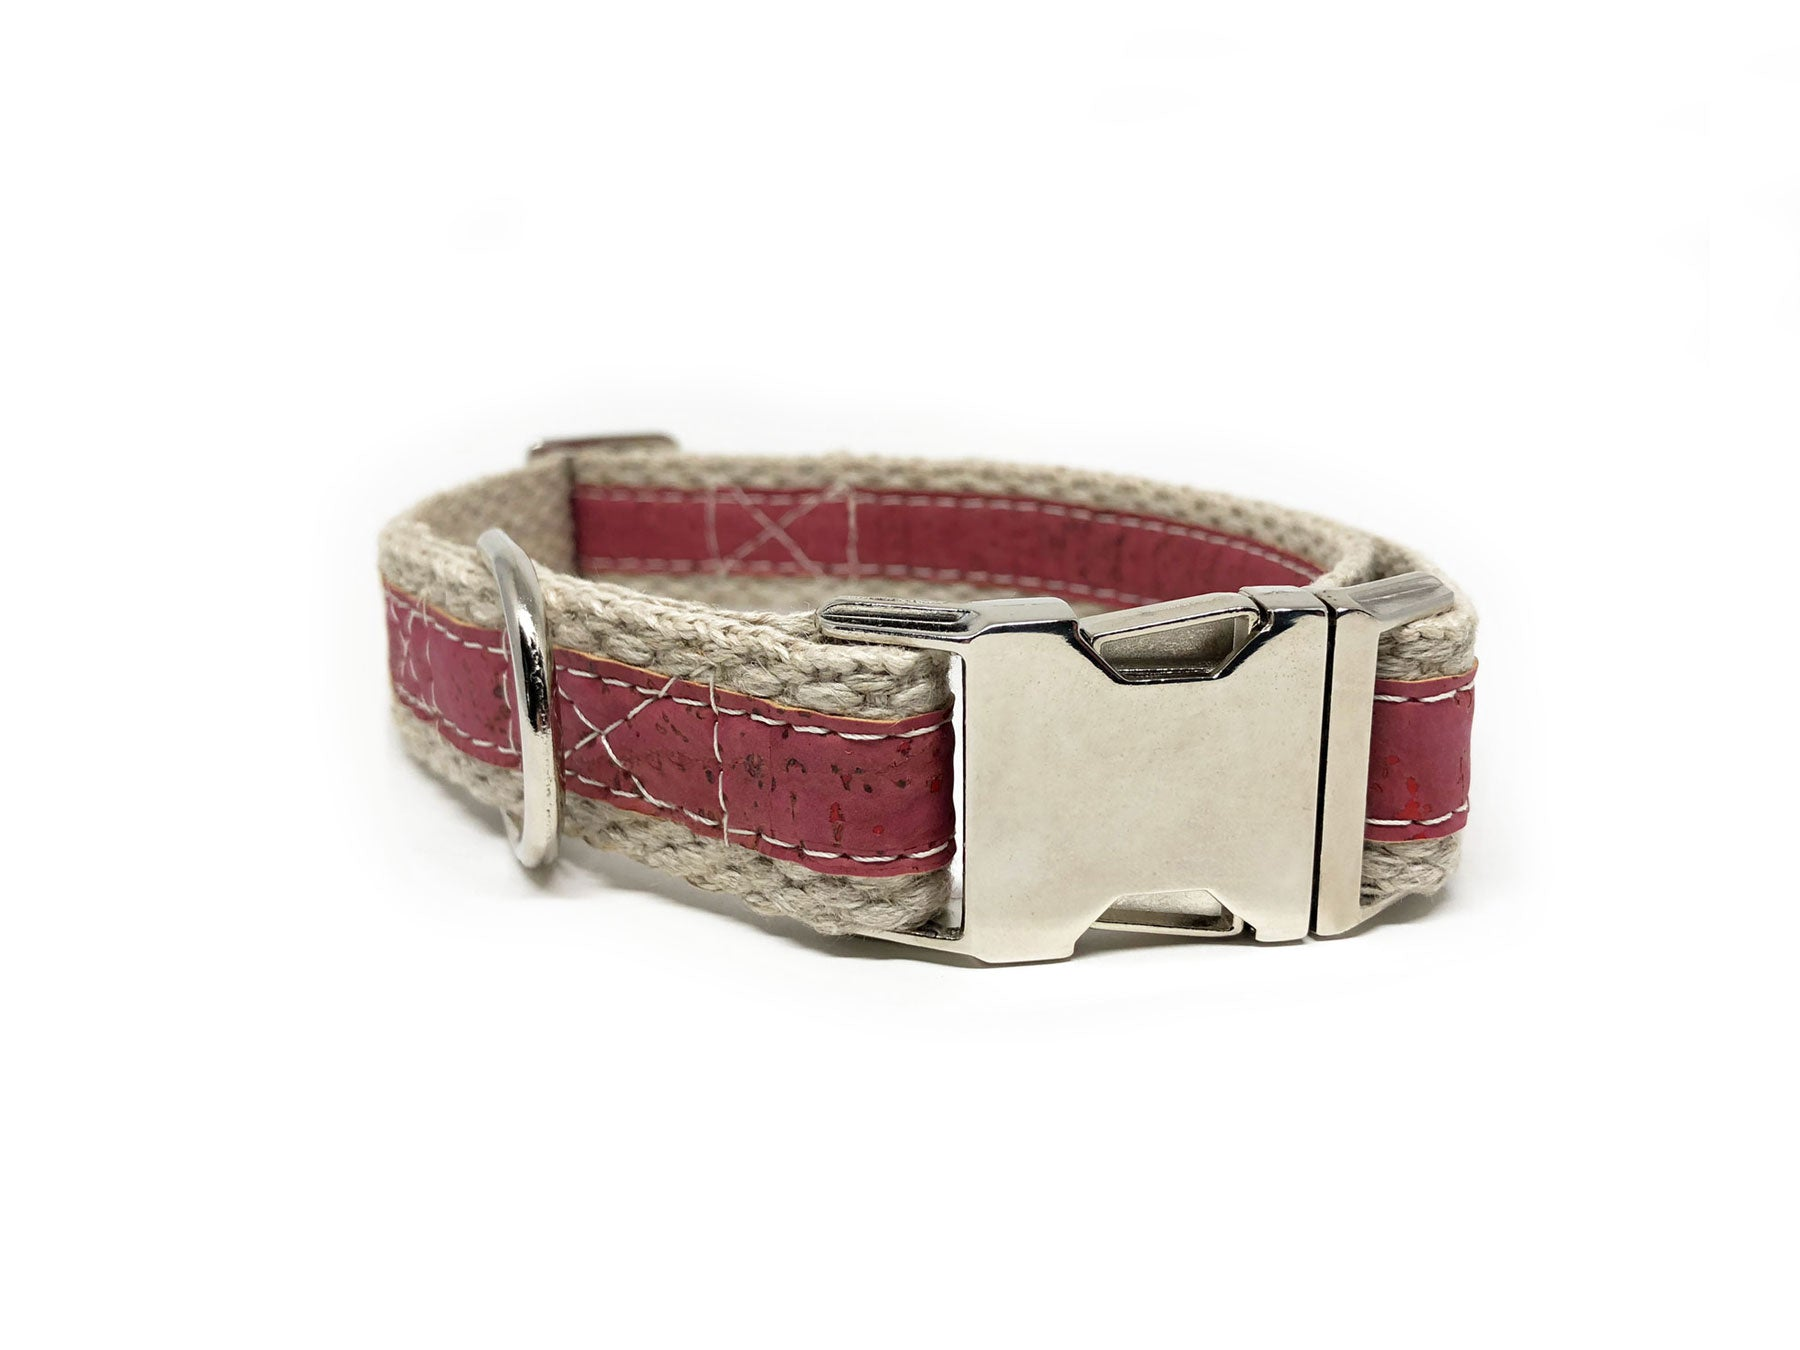 Adventurer Pretty in Pink Cork Leather Large Dog Collar, Hemp Webbing